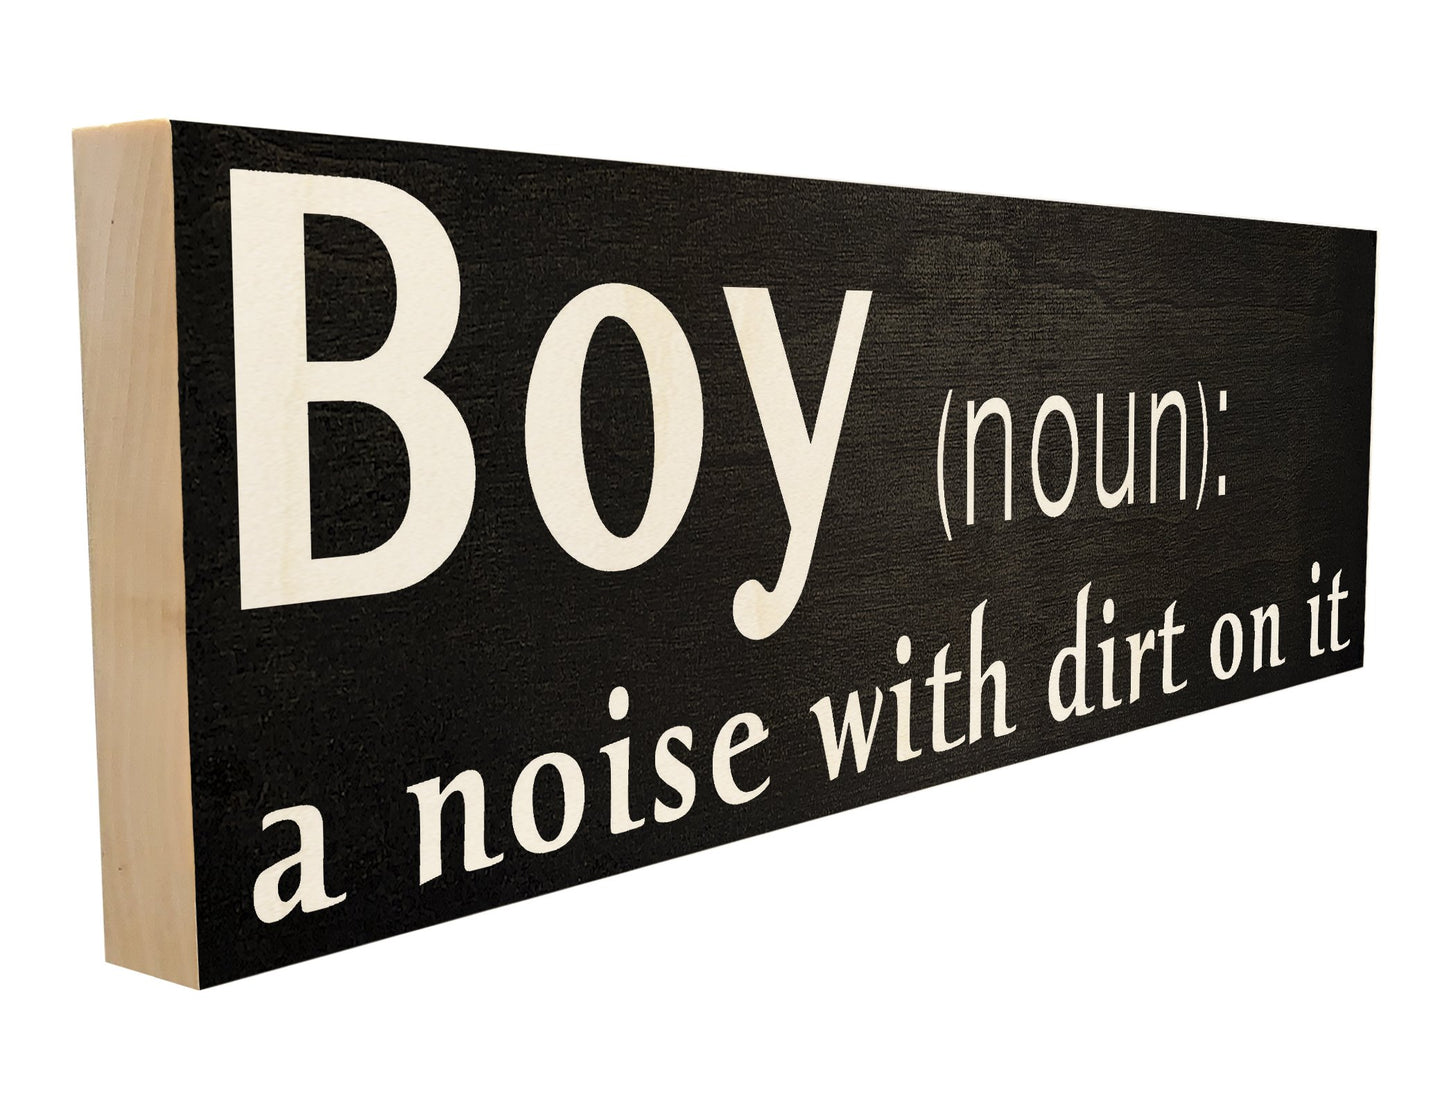 Boy. A Noise with Dirt on it.